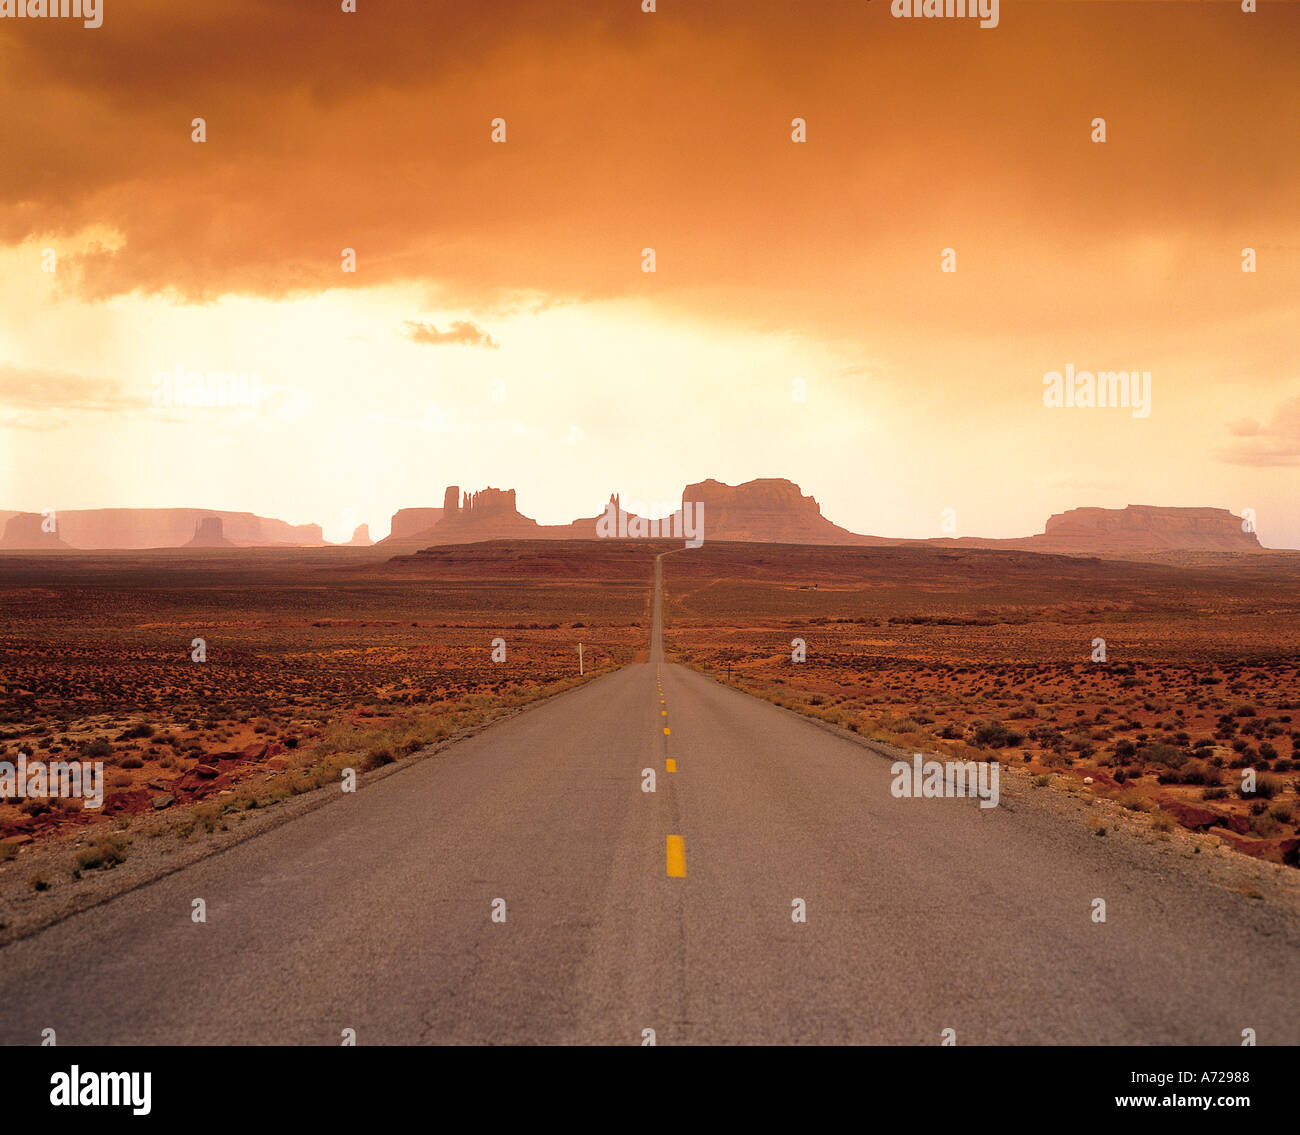 En Monument Valley Road y la interestatal 163 en Arizona Imagen De Stock